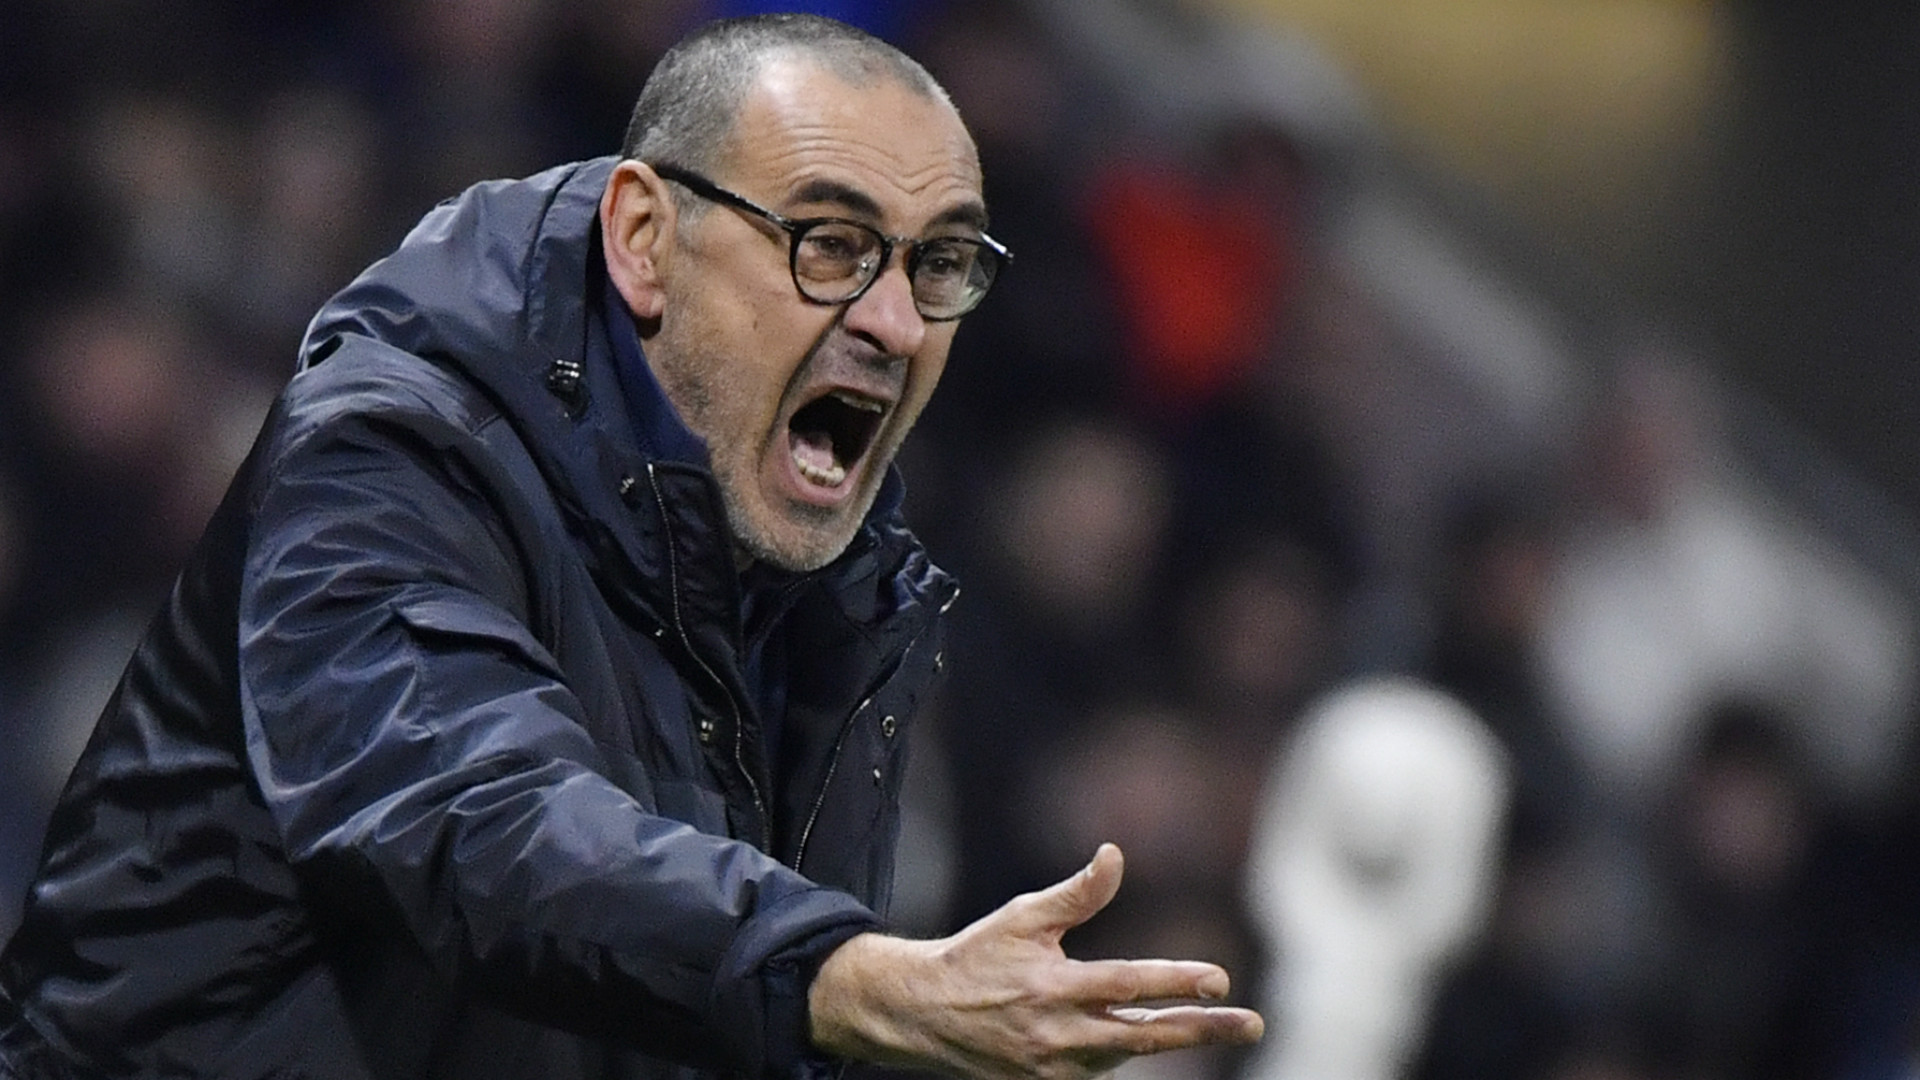 'I find this offensive' - Sarri angry as his Juventus future is questioned after Champions League exit